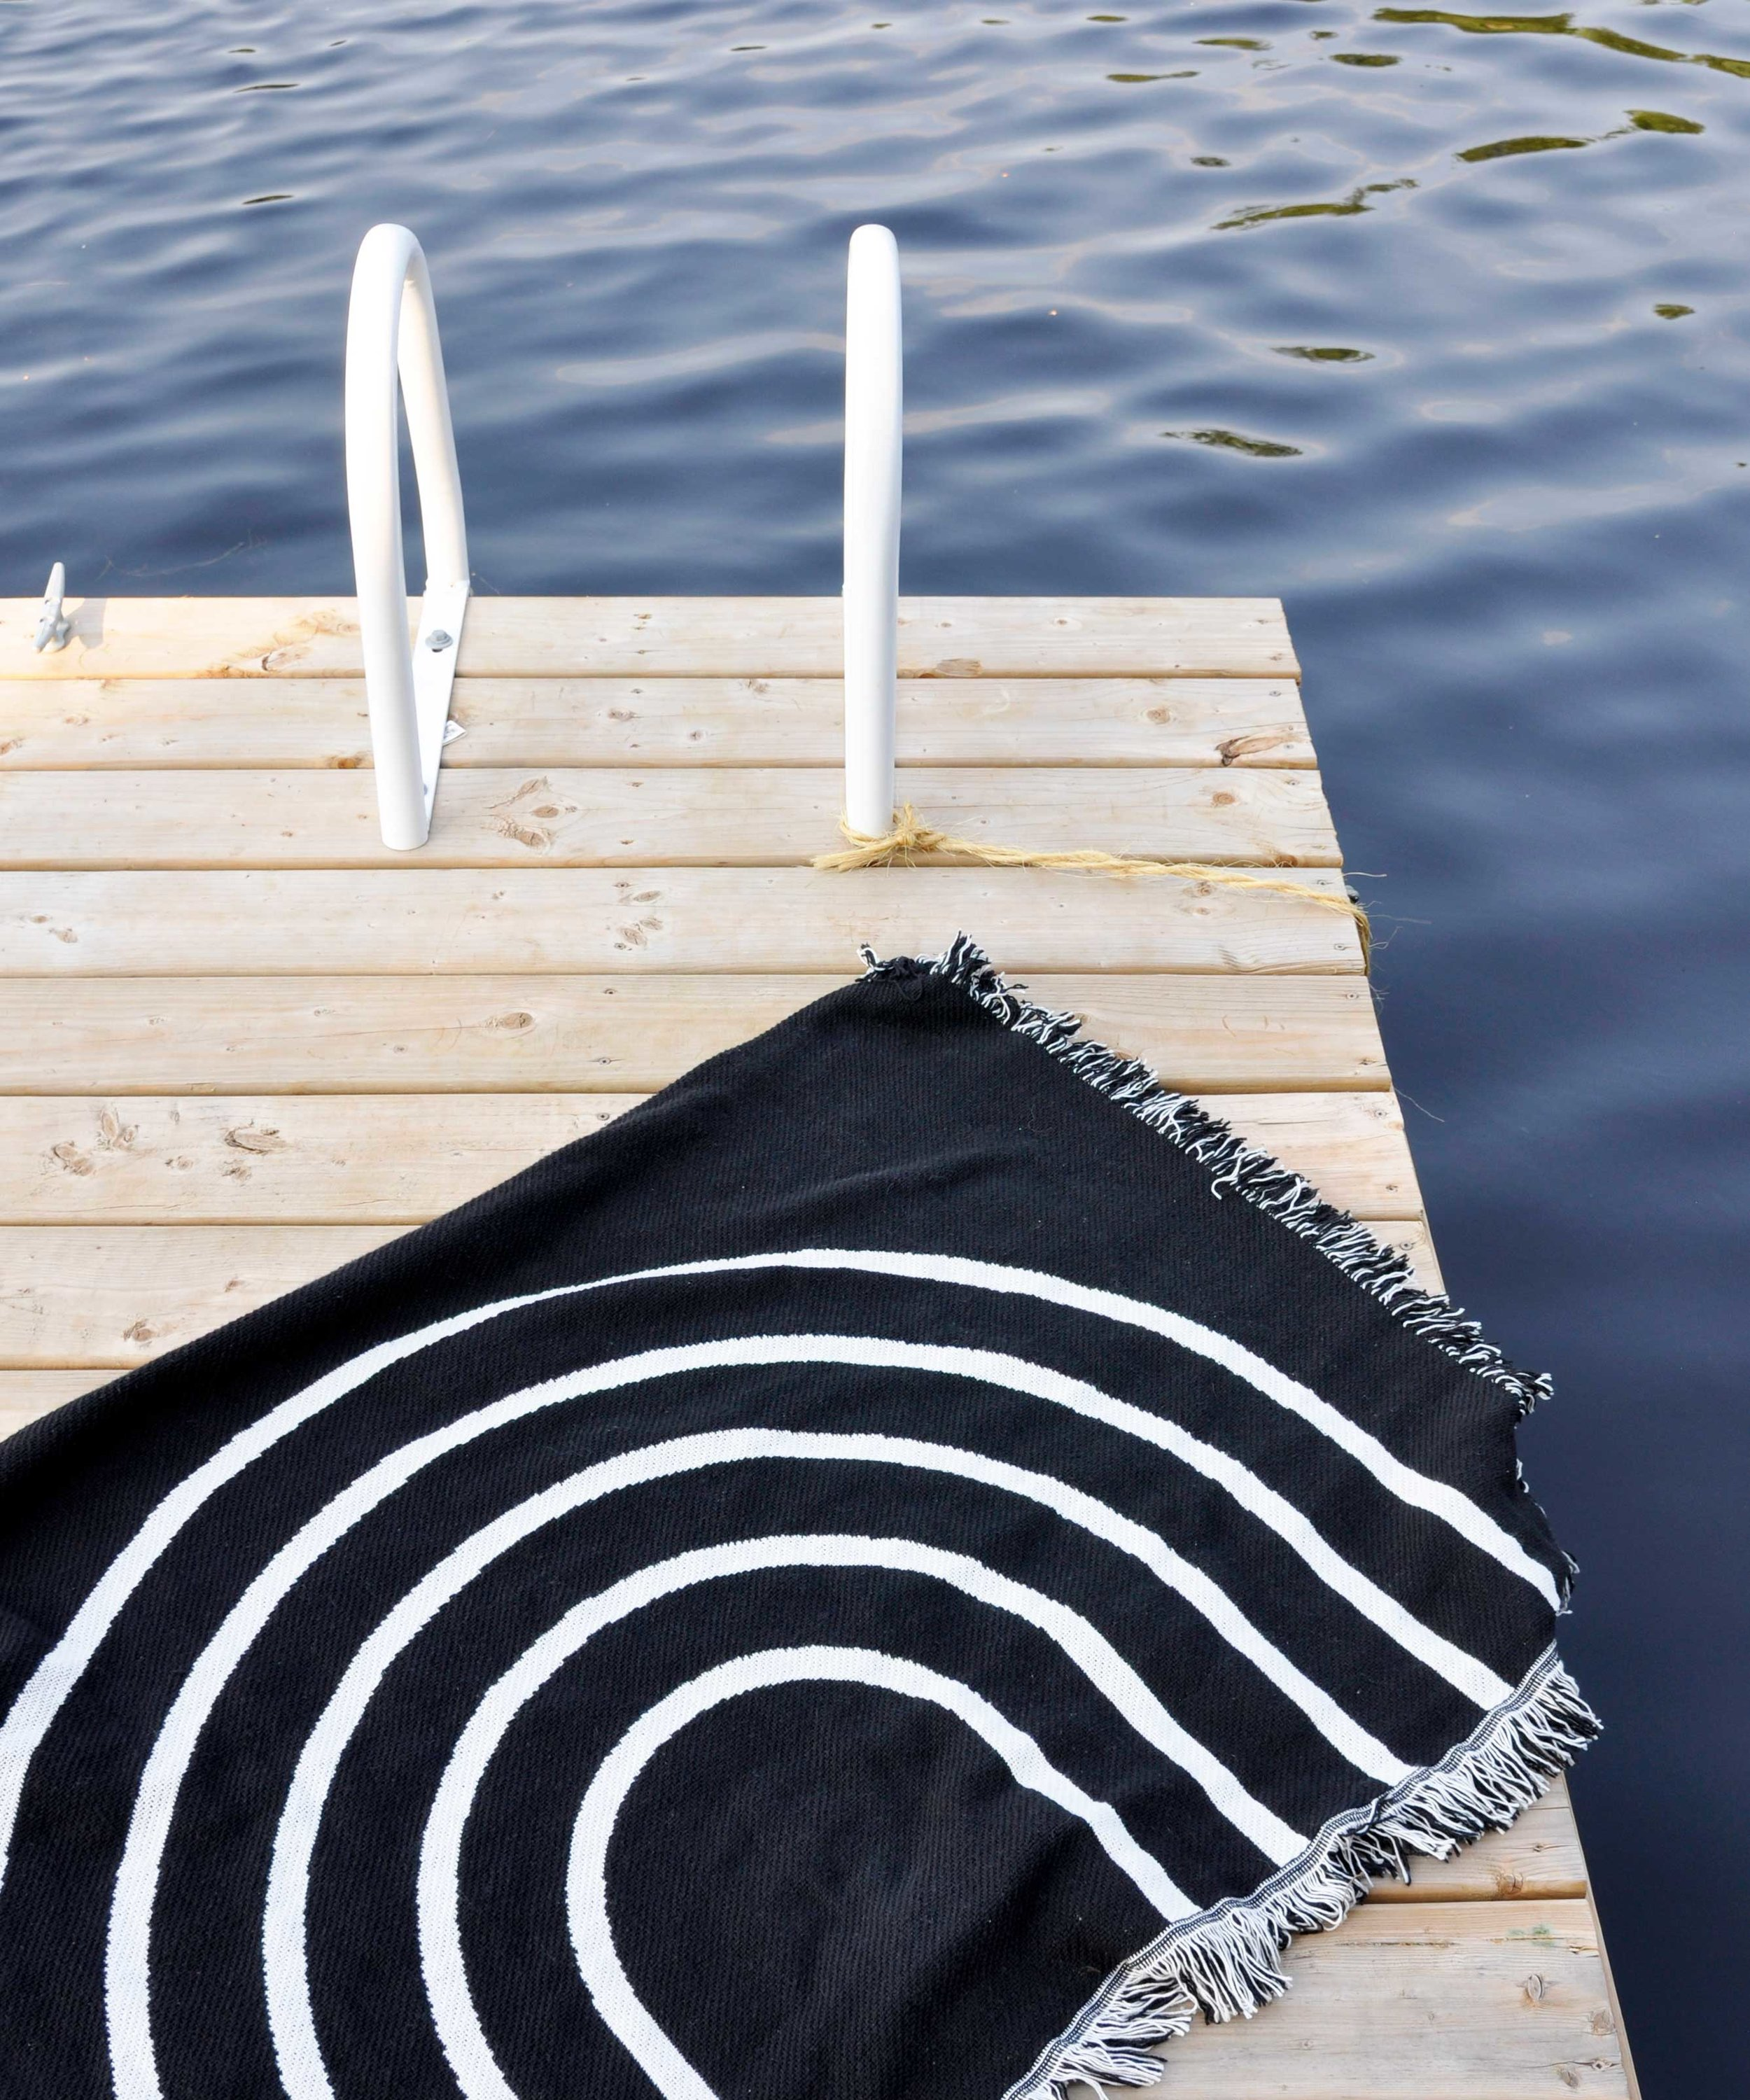 Rainbow cotton throw blanket    by Swell Made Co. Spread out on the dock or the beach for a day in the sun.